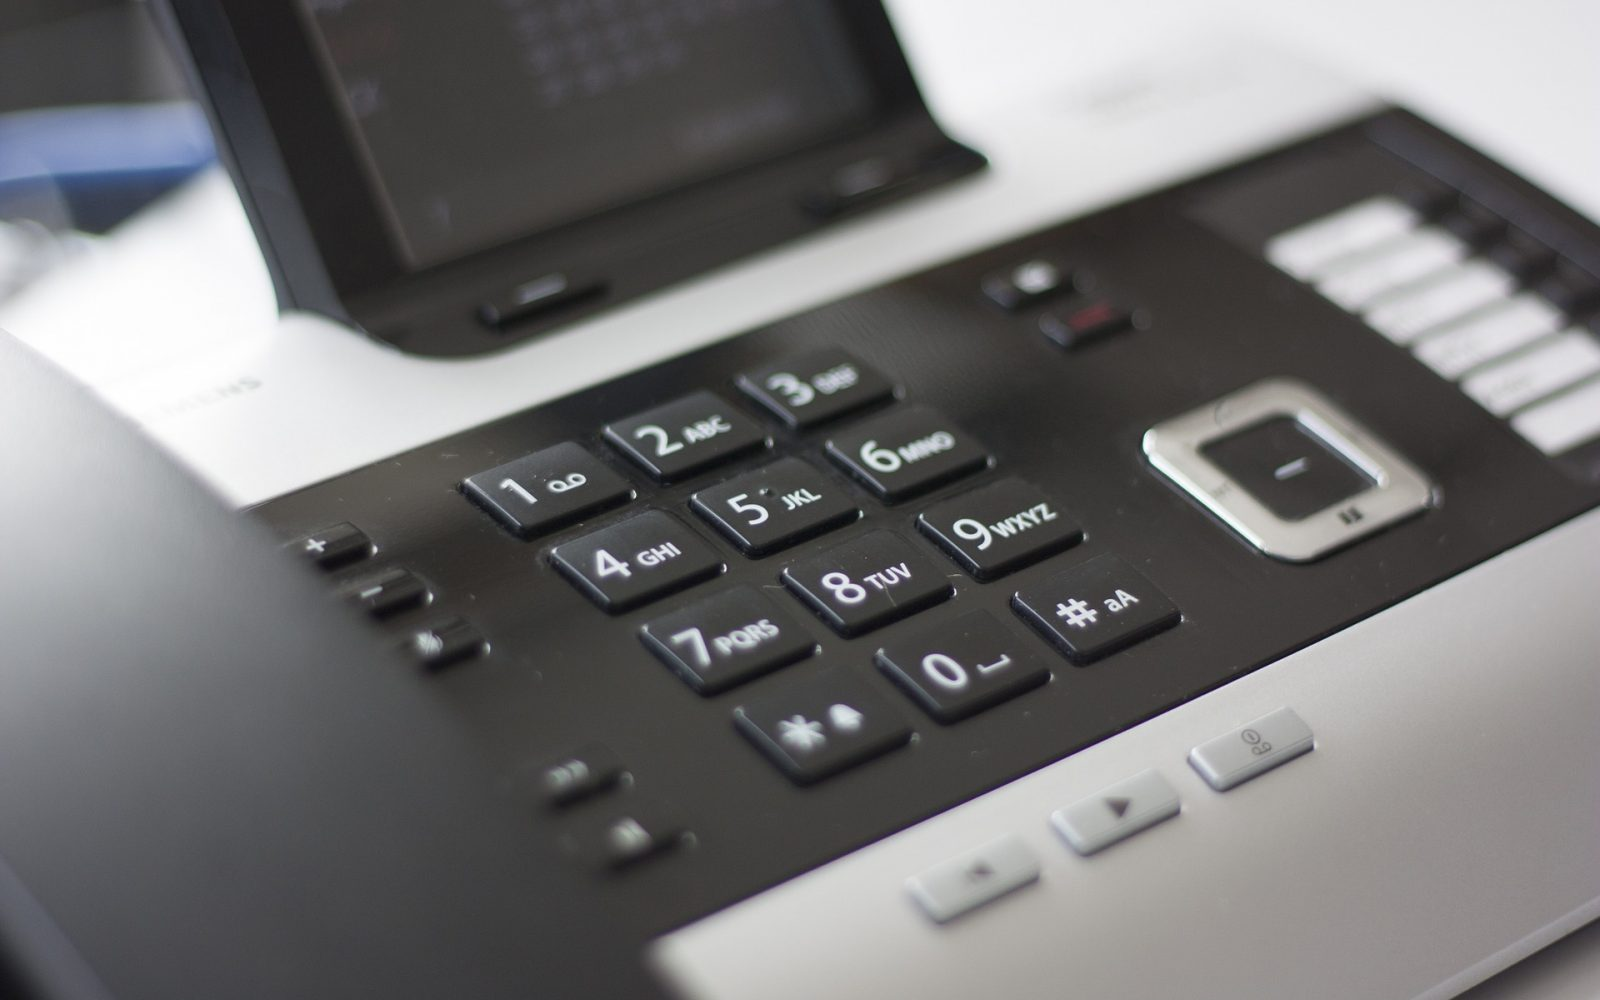 small-business-phone-voip